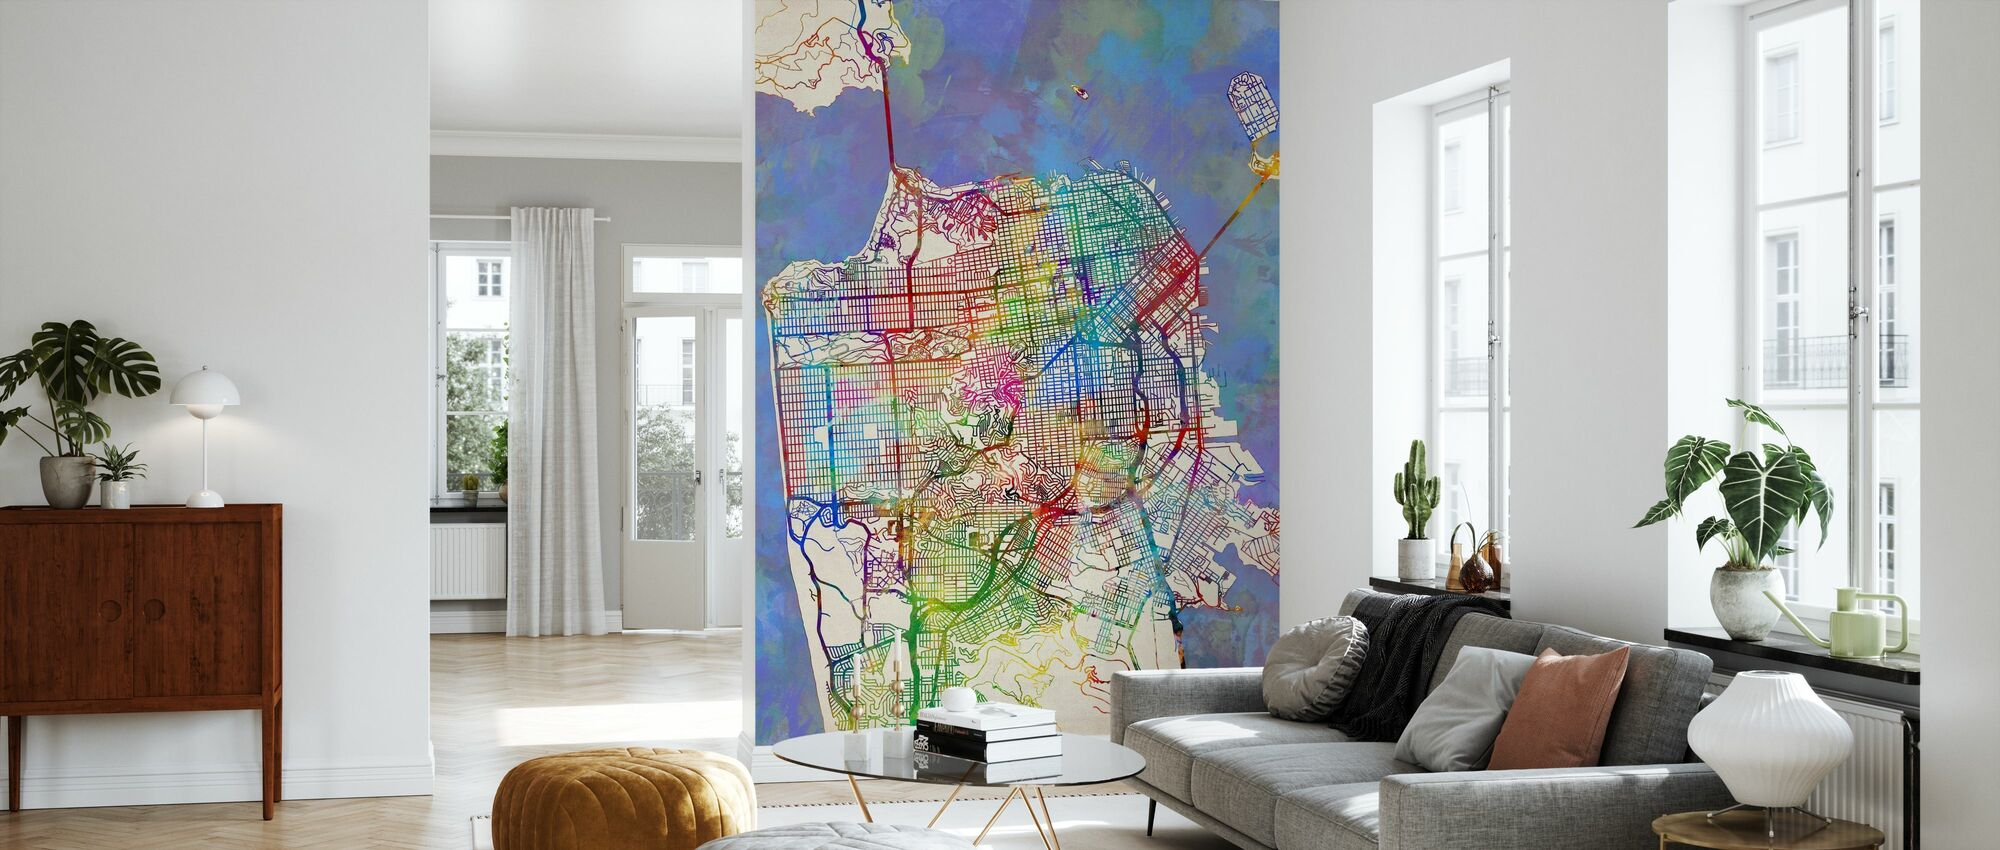 San Francisco City Street Map - Wallpaper - Living Room